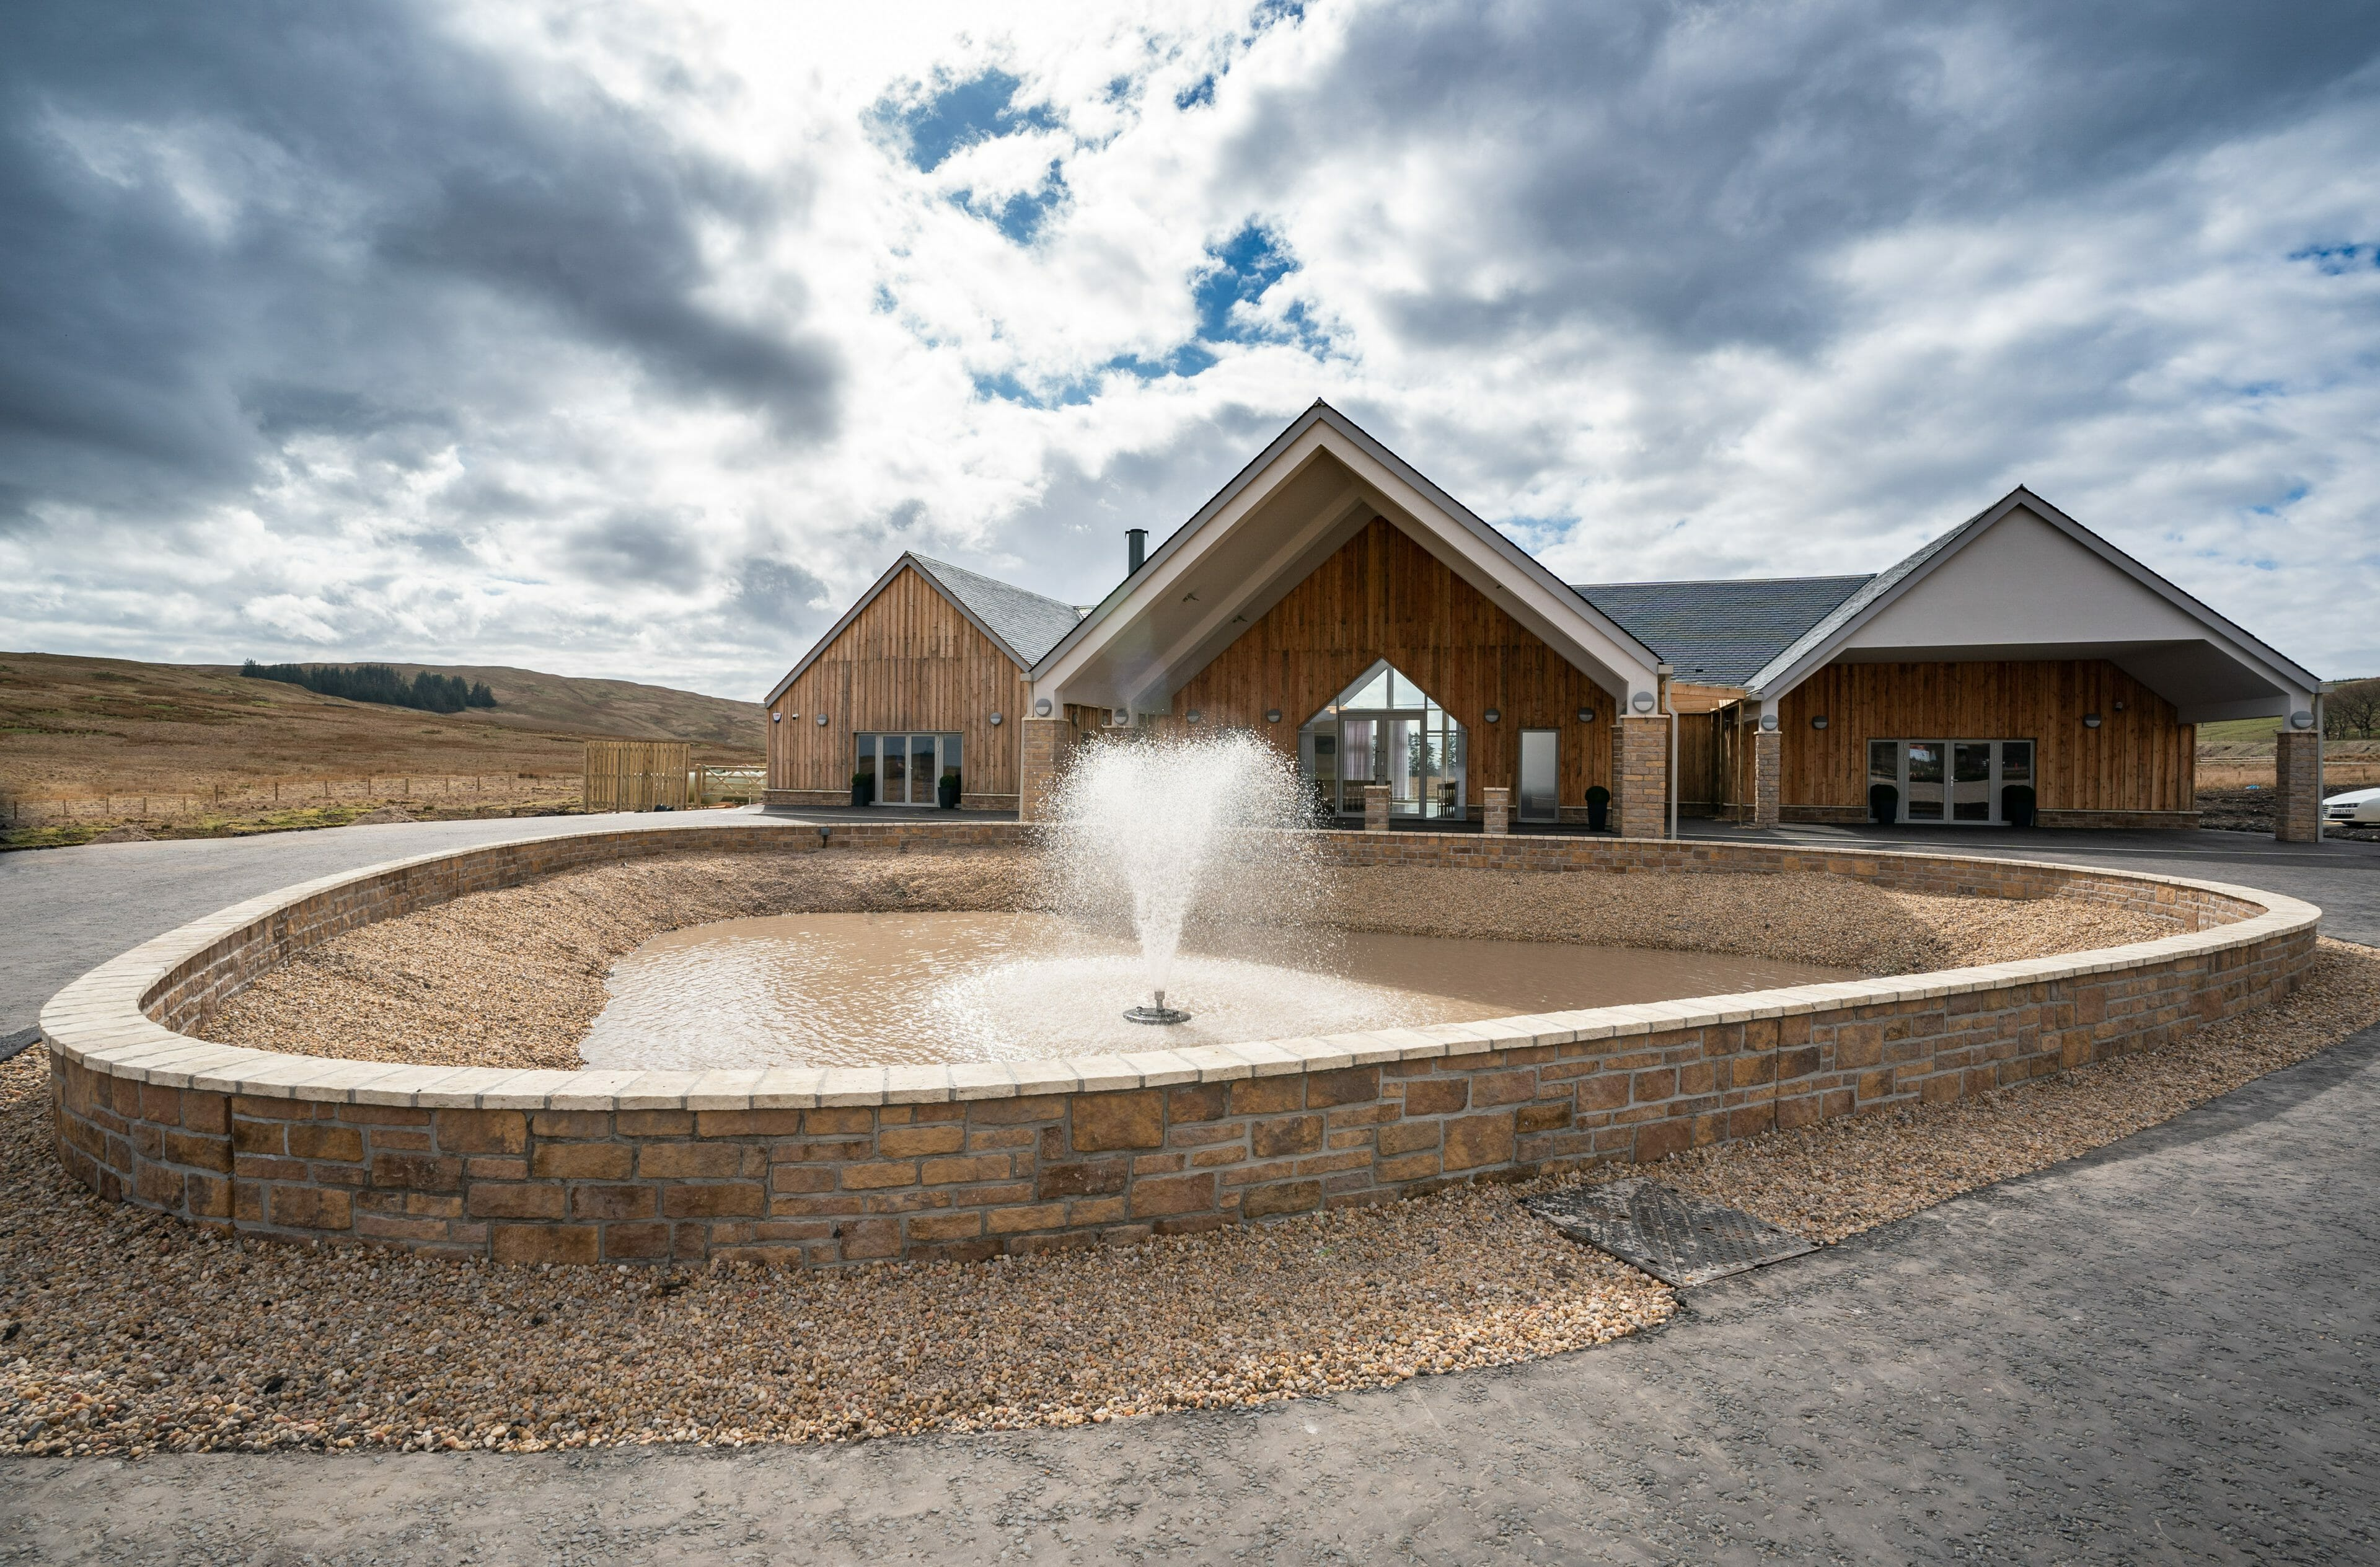 The Doors are Open at The Clyde Coast and Garnock Valley Crematorium